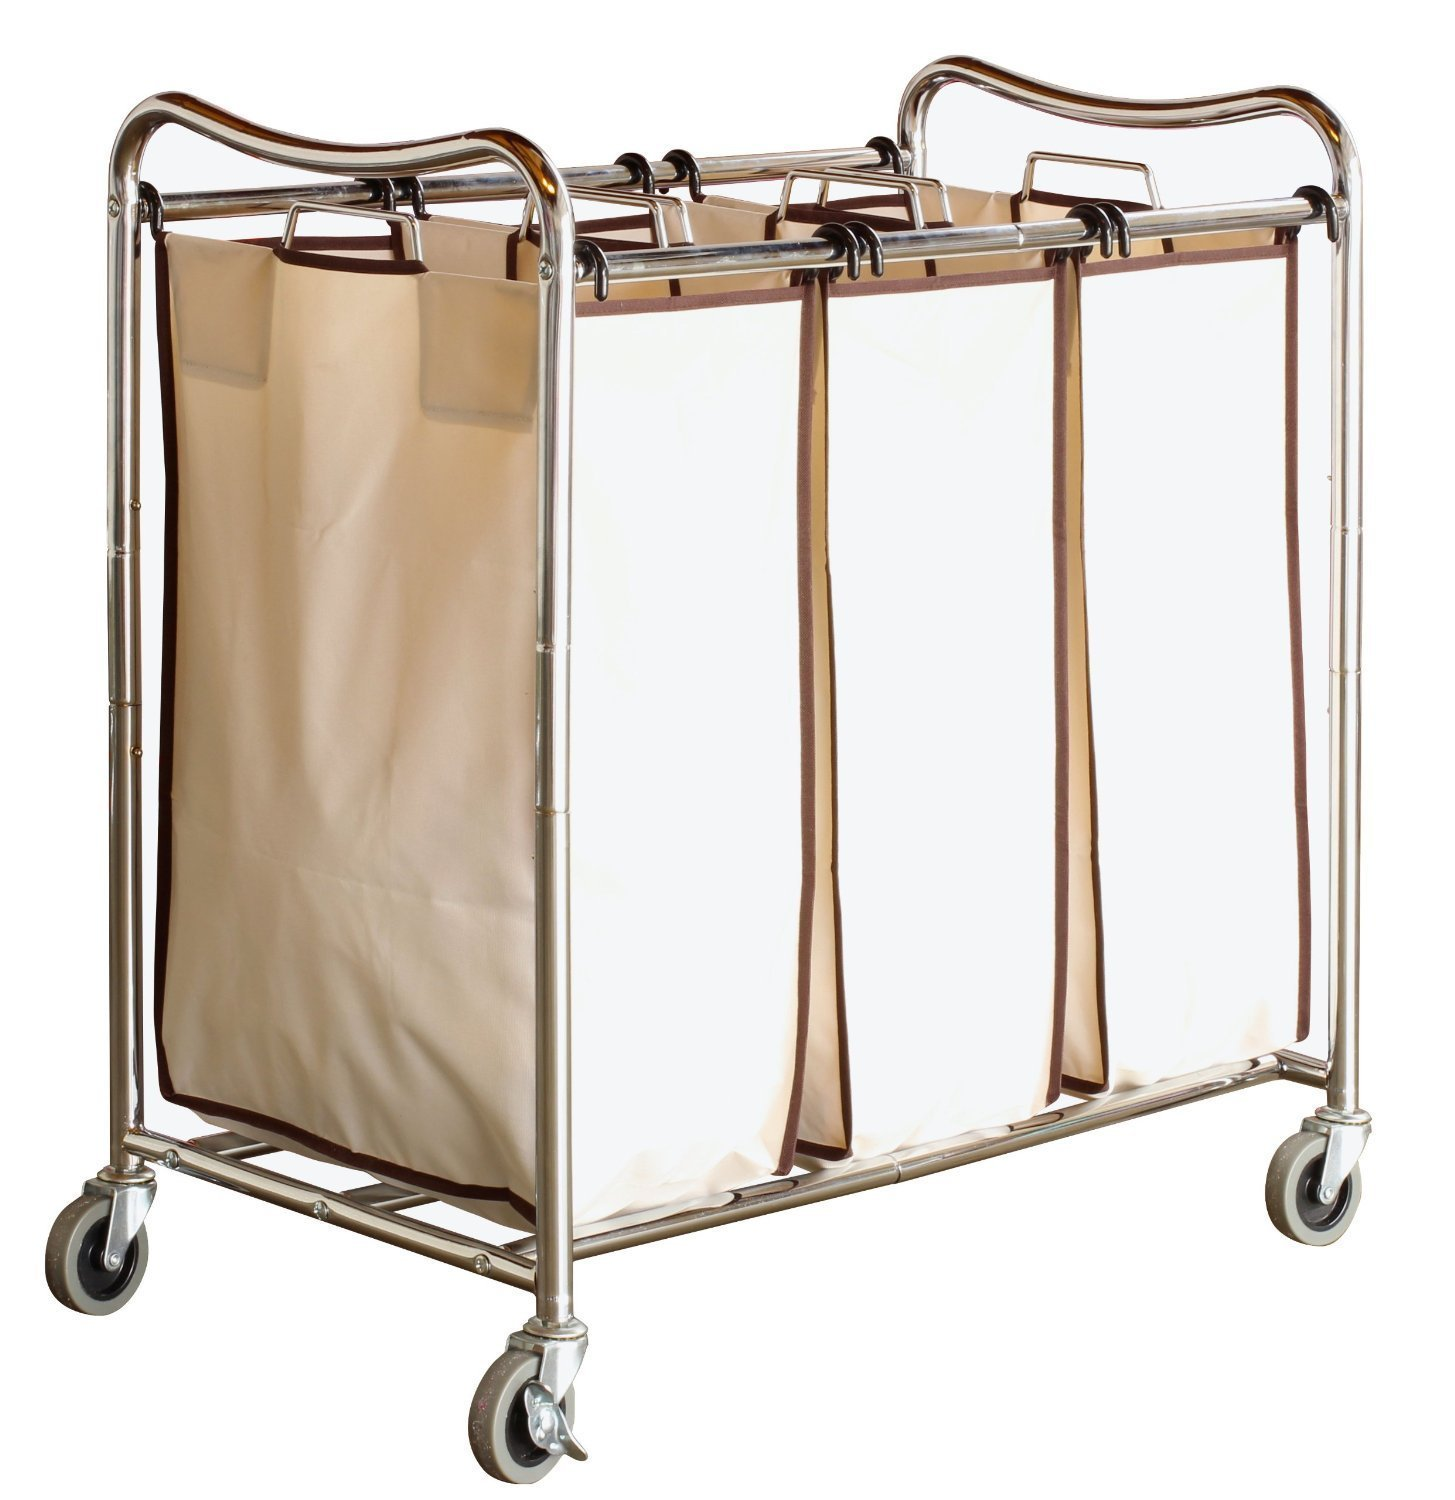 Decobros Heavy-Duty 3-Bag Laundry Sorter Cart Chrome 14